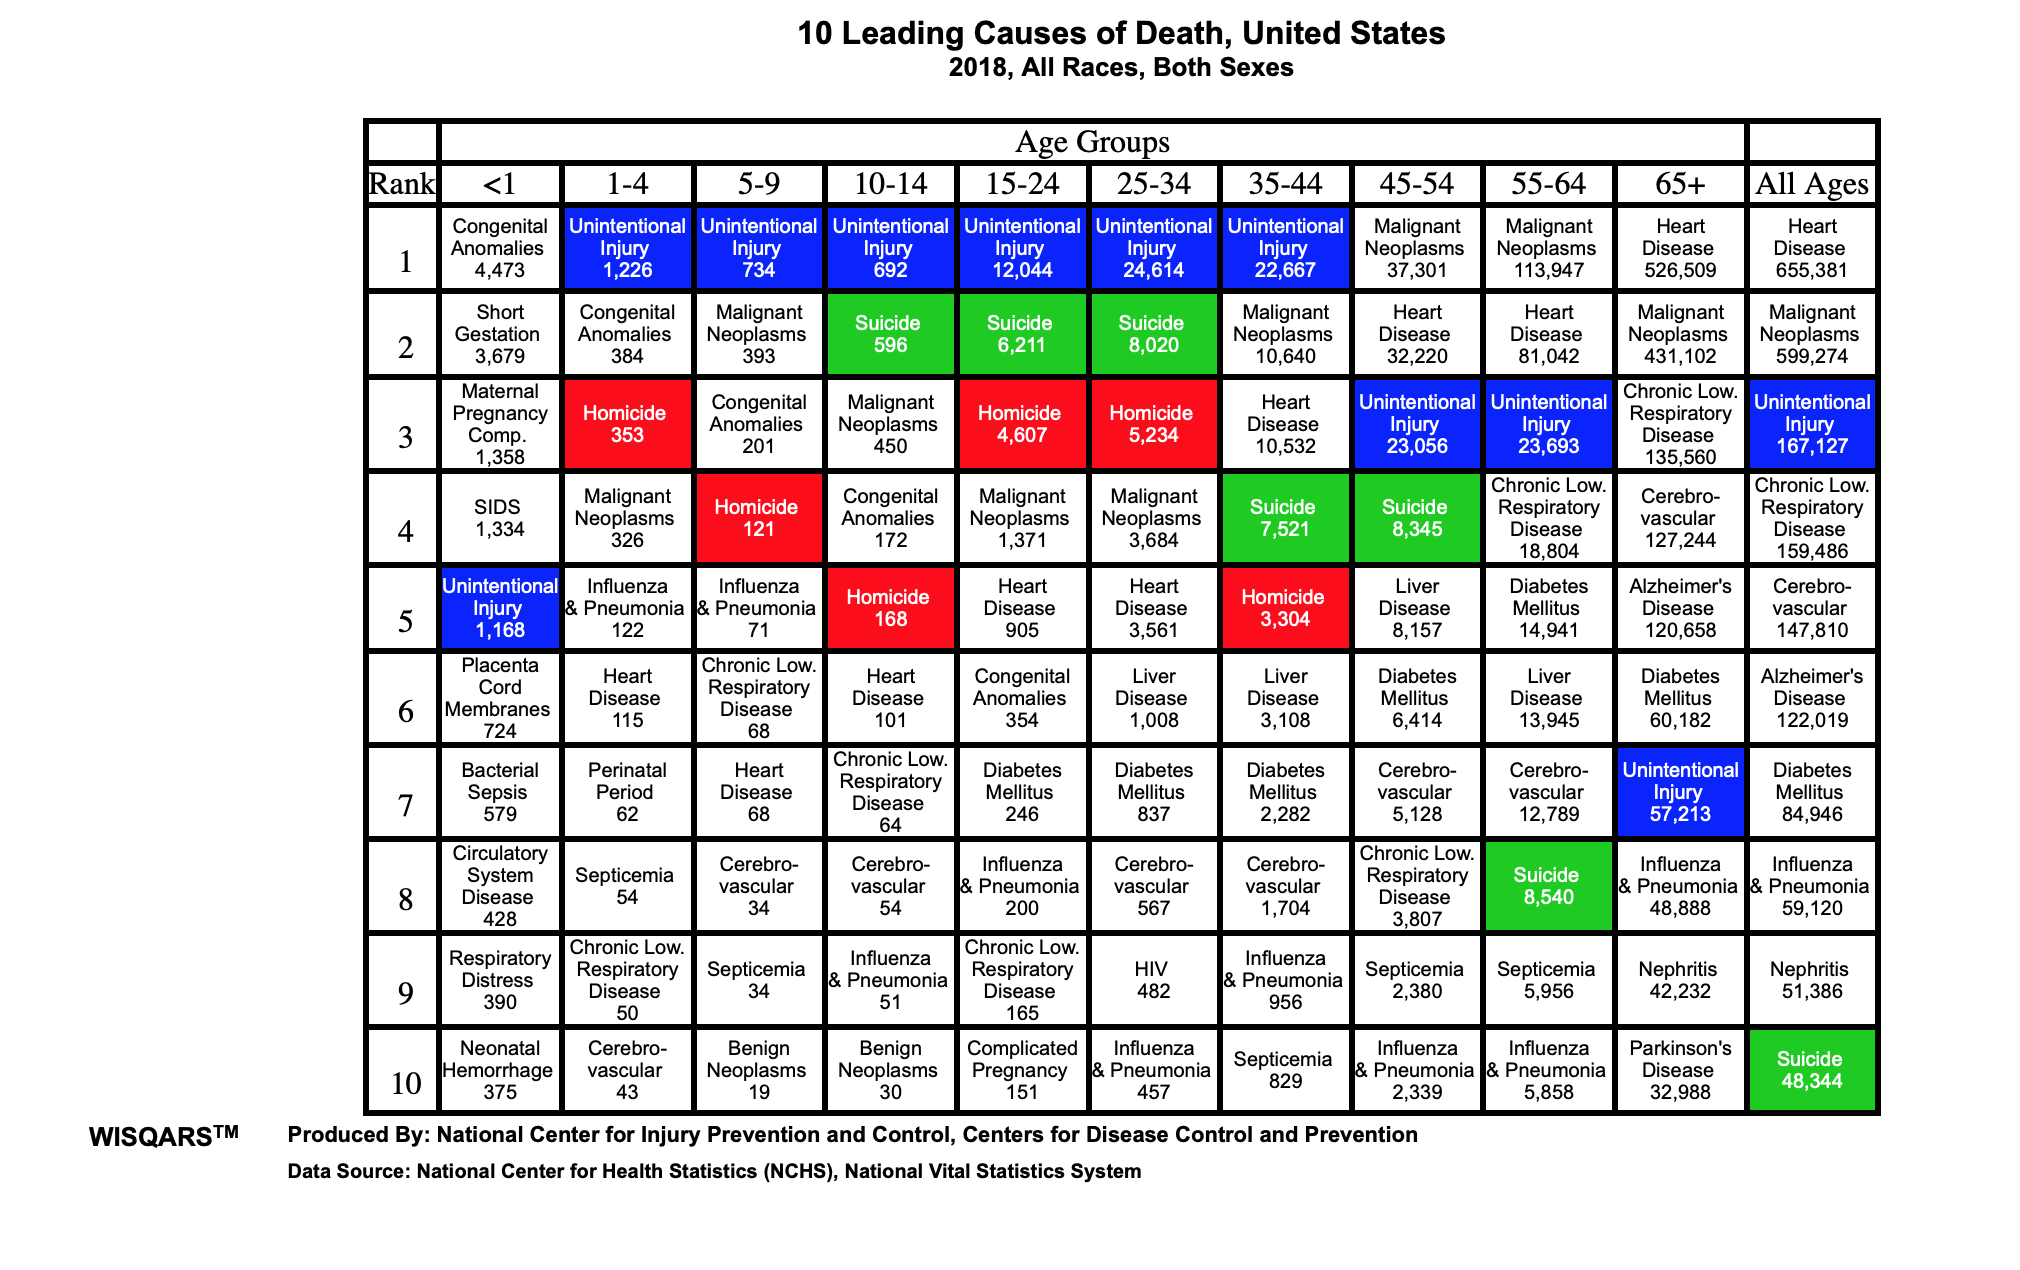 2018 Stats from CDC for 10 Leading Causes of Death in US to educate readers